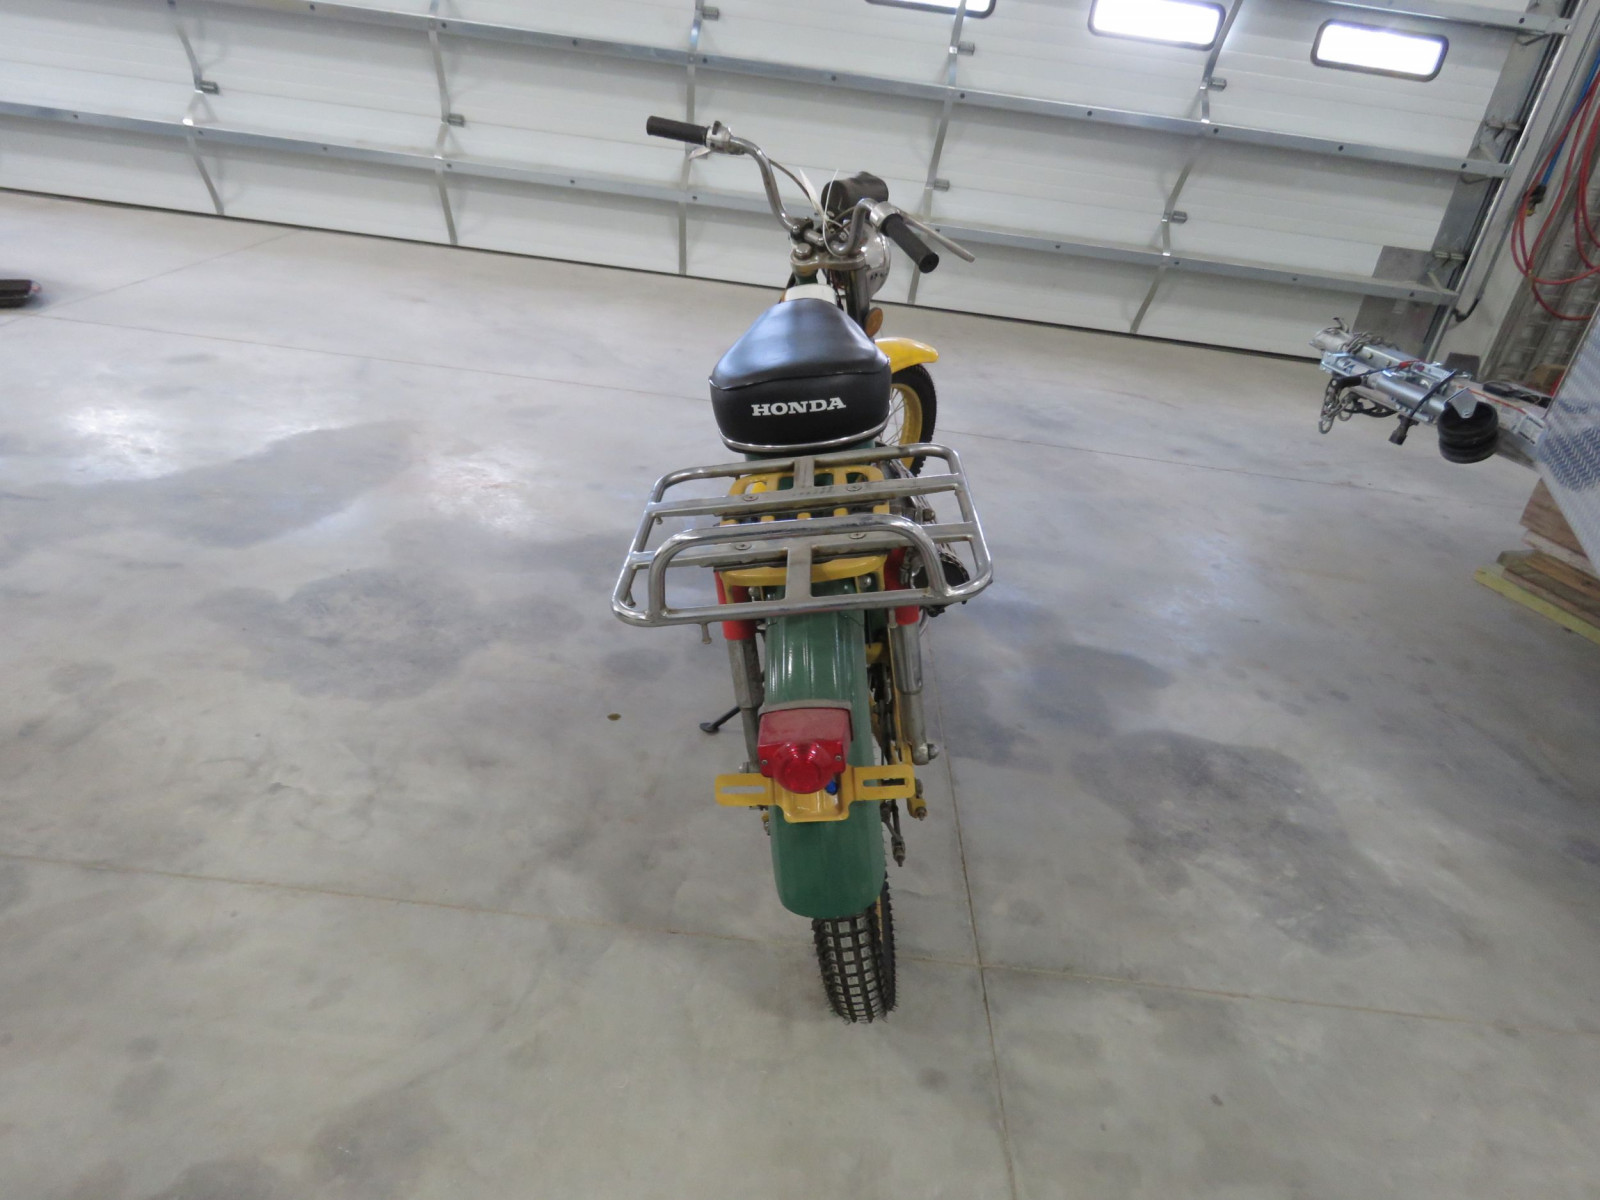 1965 Honda trail 90 Scooter - Image 3